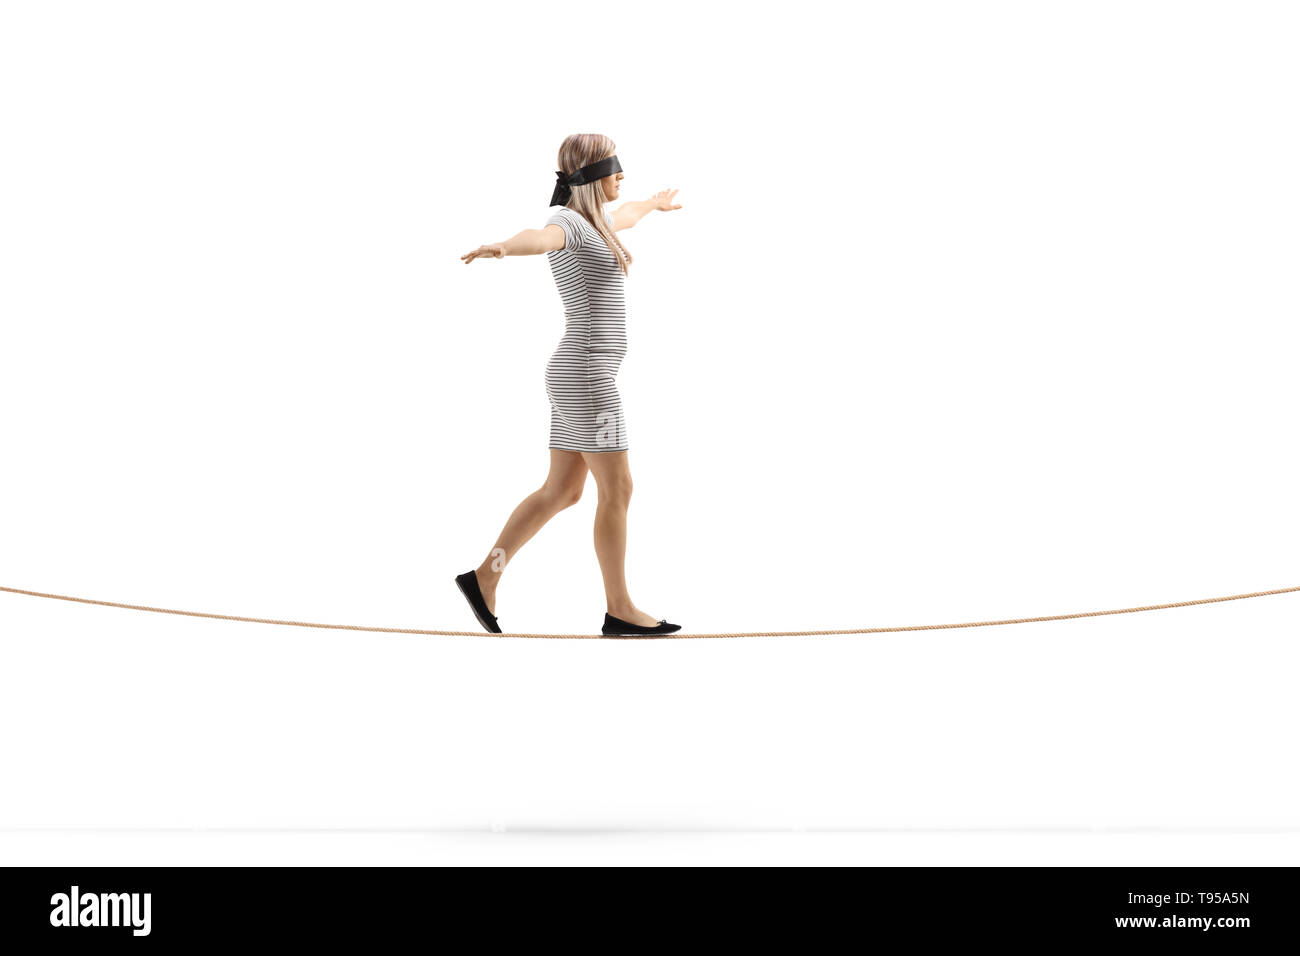 Full length profile shot of a woman walking on a rope and wearing blindfold isolated on white background - Stock Image